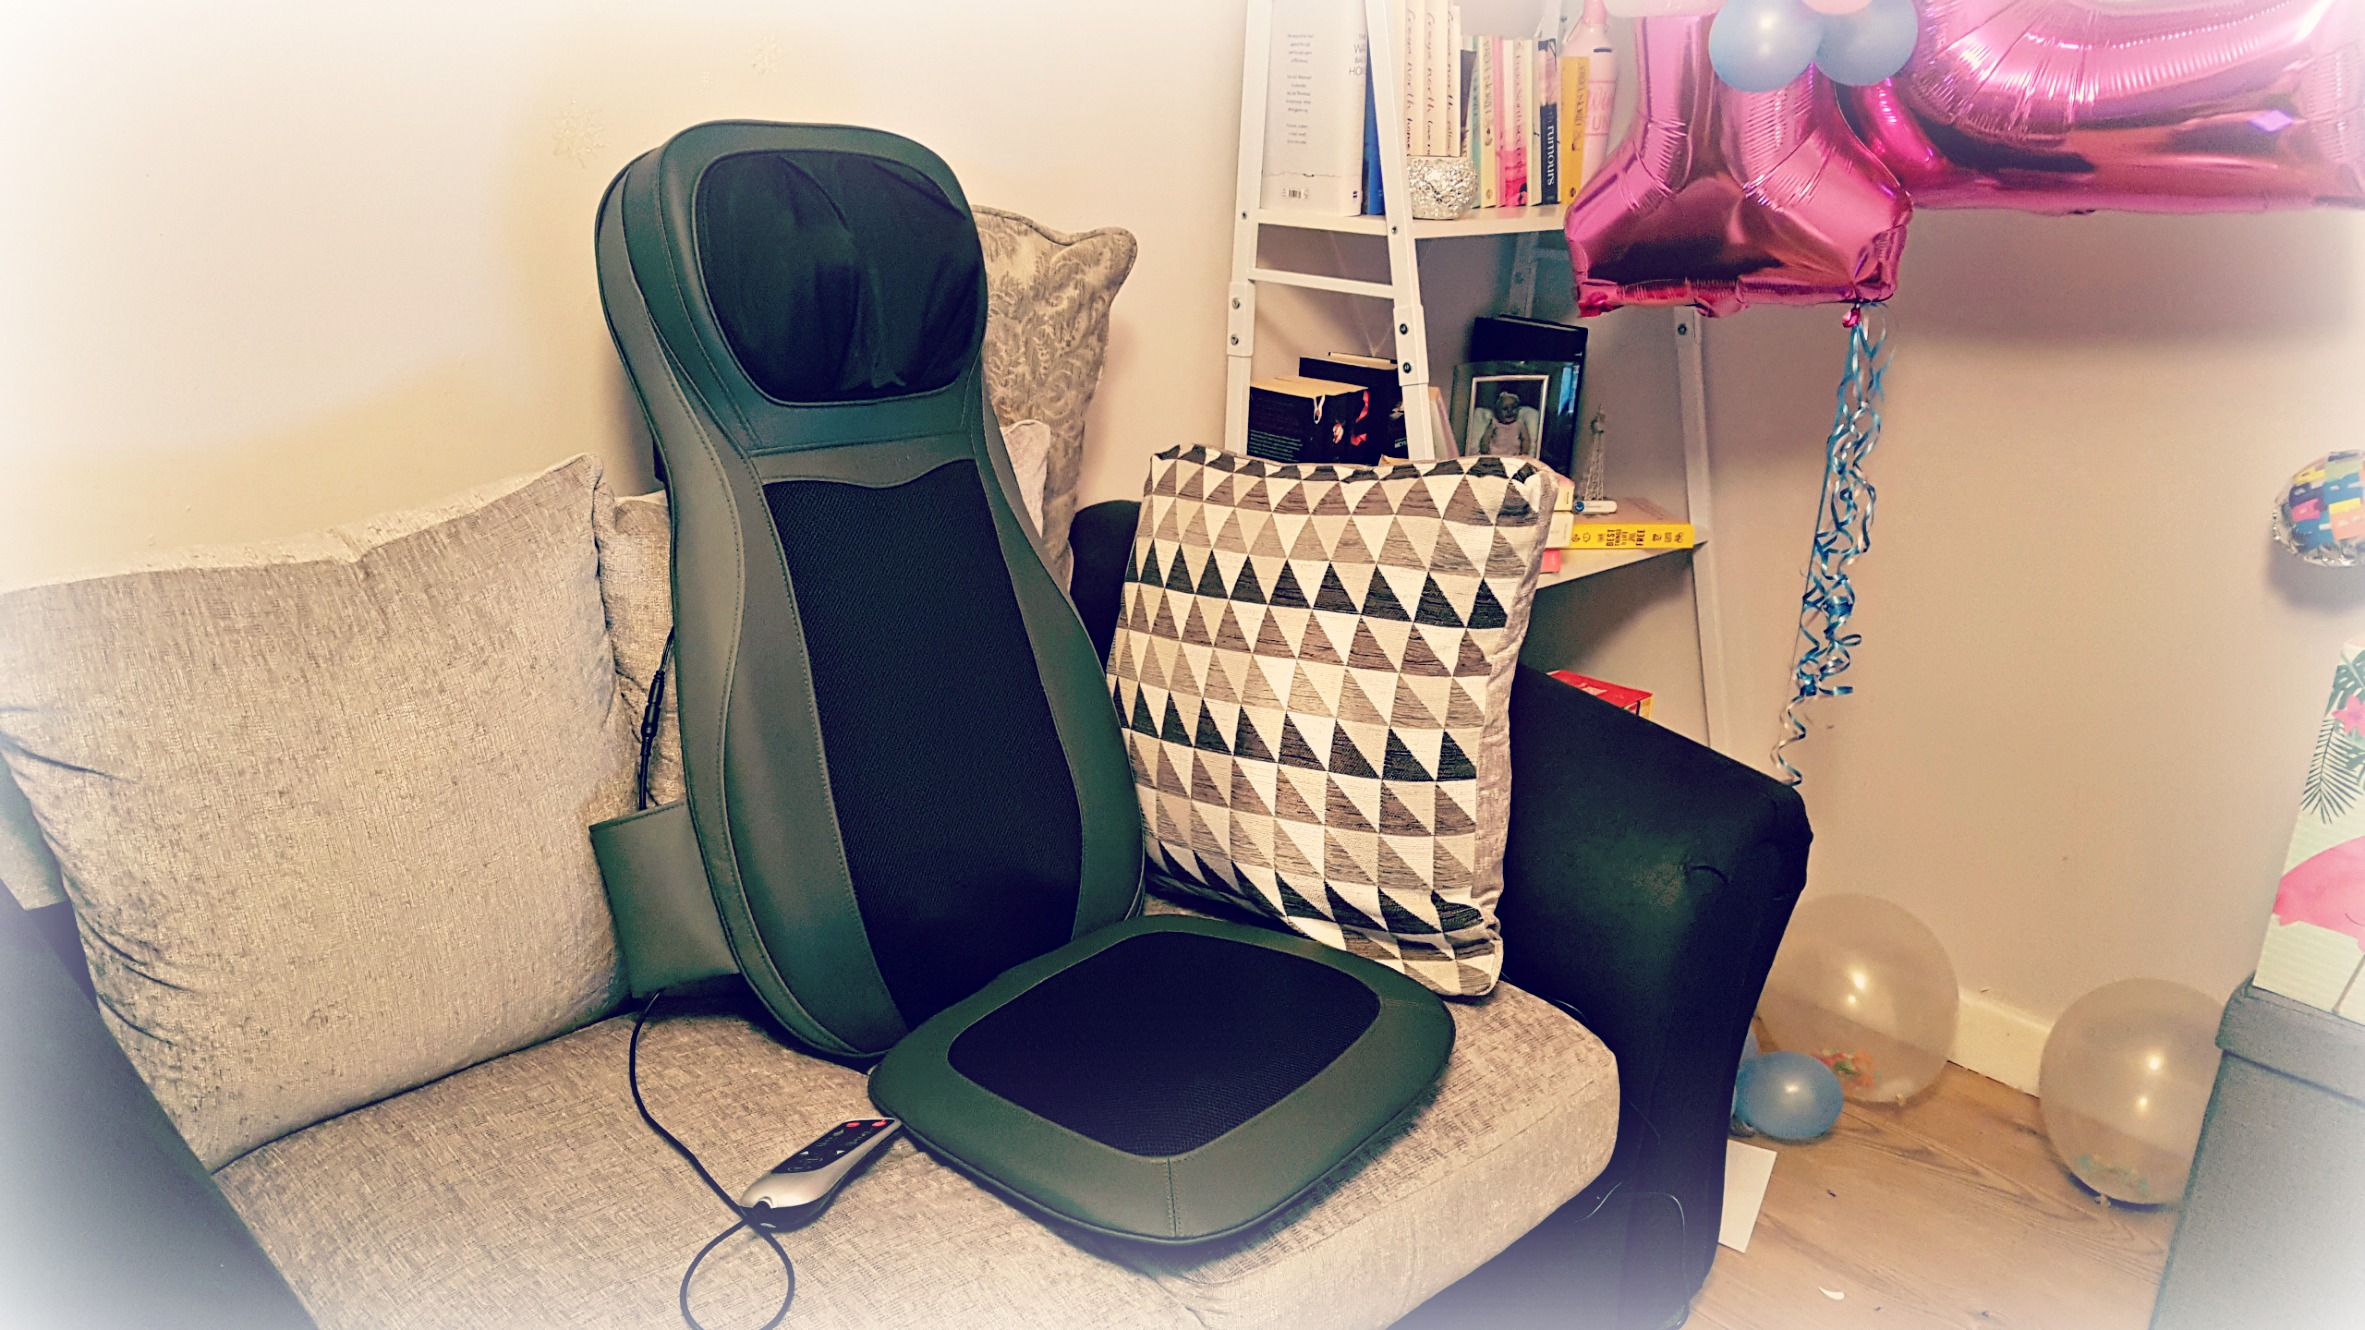 naipo back massager on a grey sofa with birthday items in the background